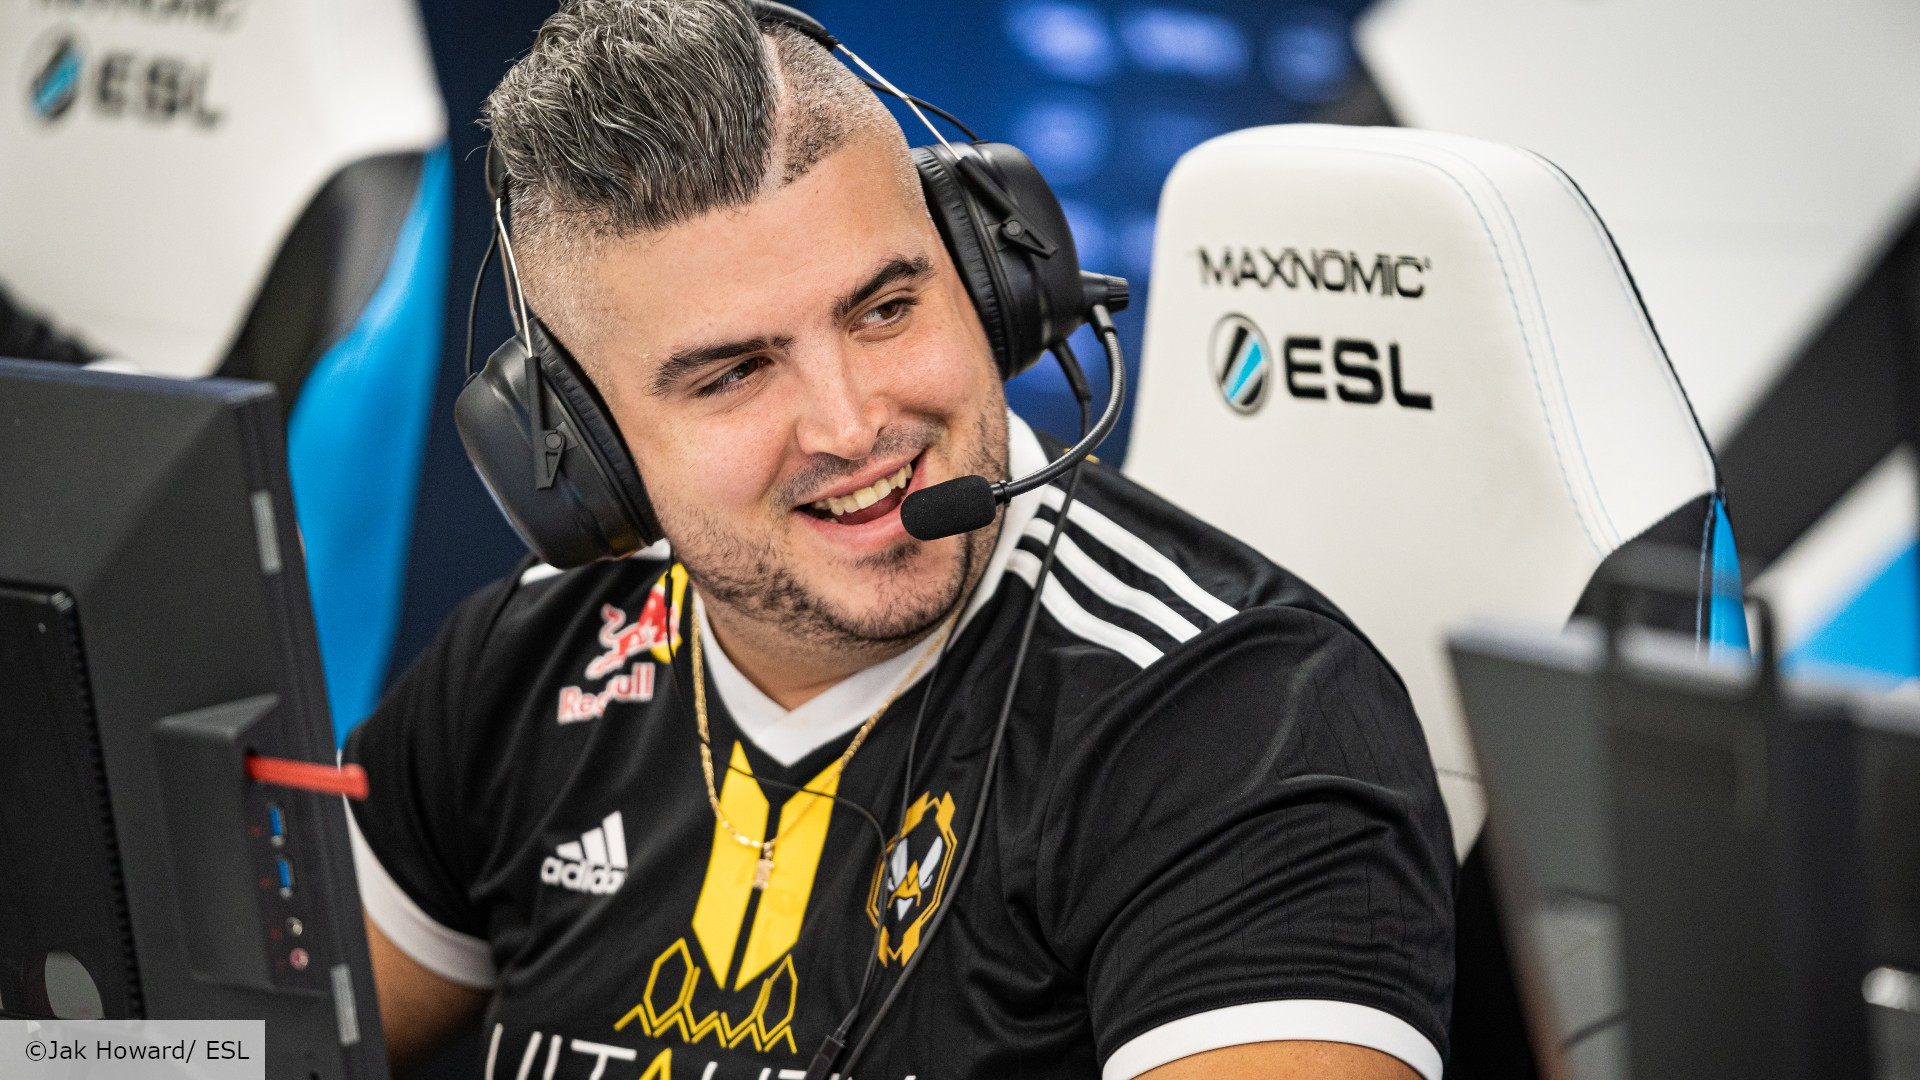 French esports player 'RpK' leaves CSGO